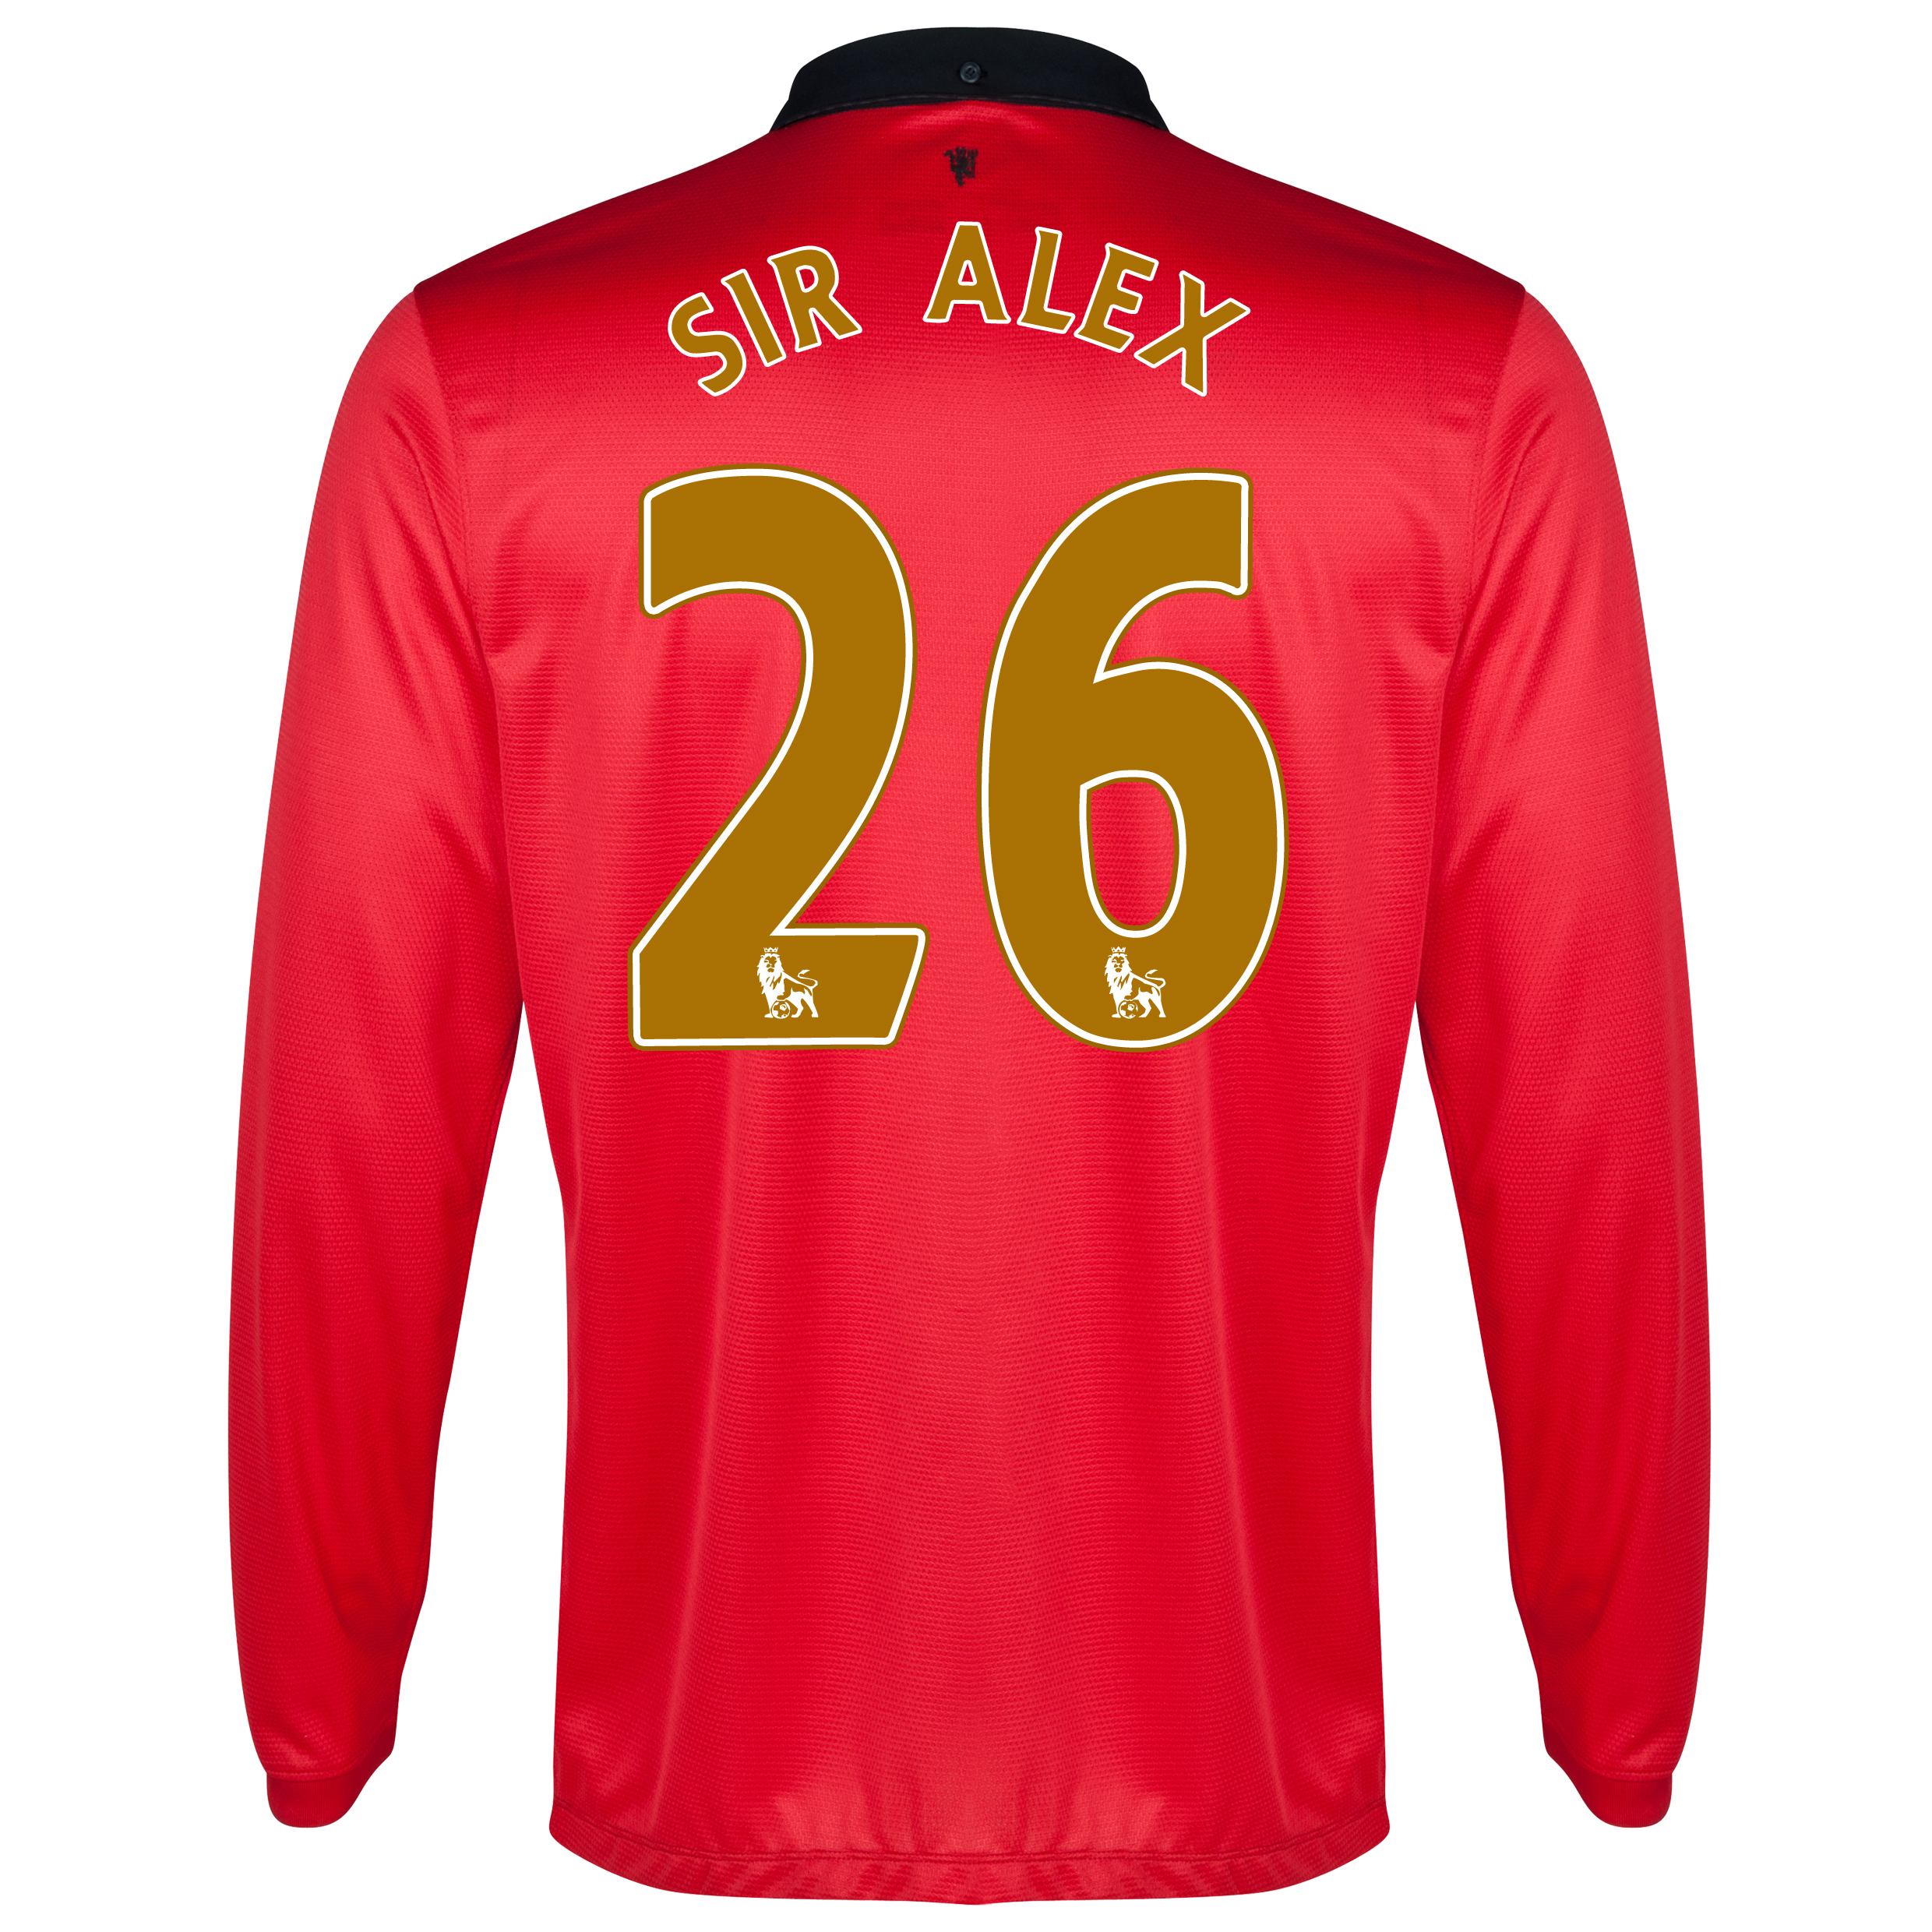 Manchester United Home Shirt 2013/14 - Long Sleeved - Kids with Sir Alex 26 printing